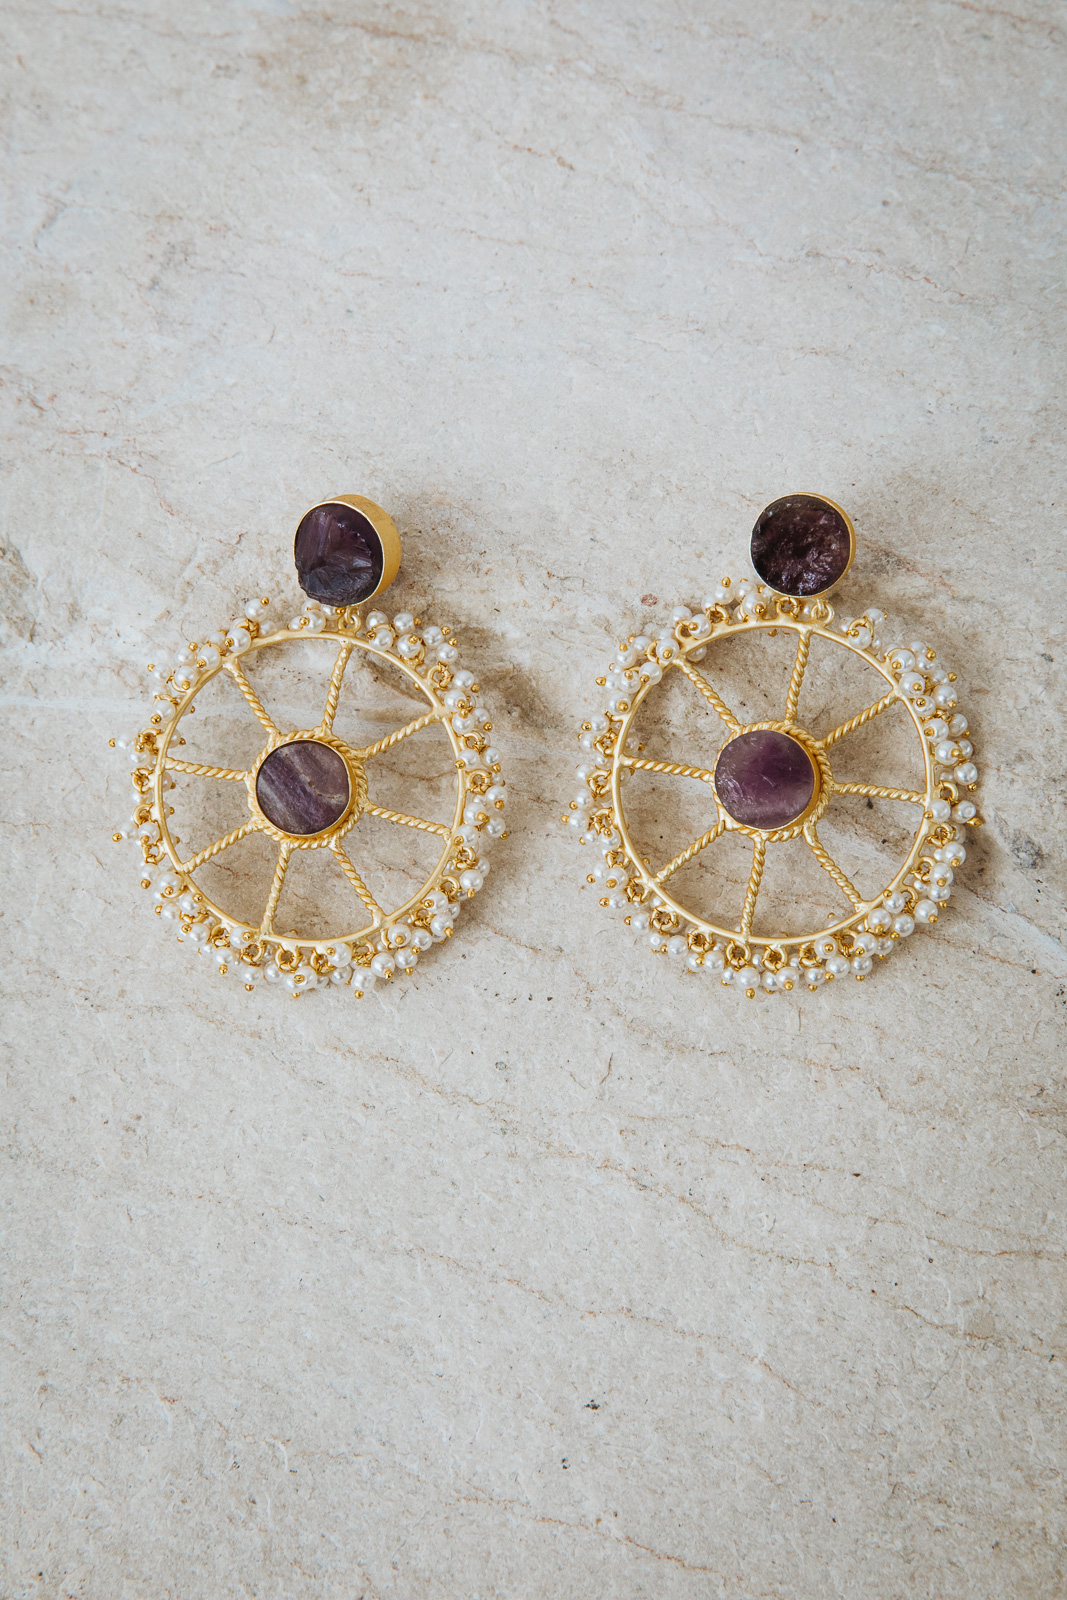 WHEEL OF PURPLE PEARLS EARRINGS